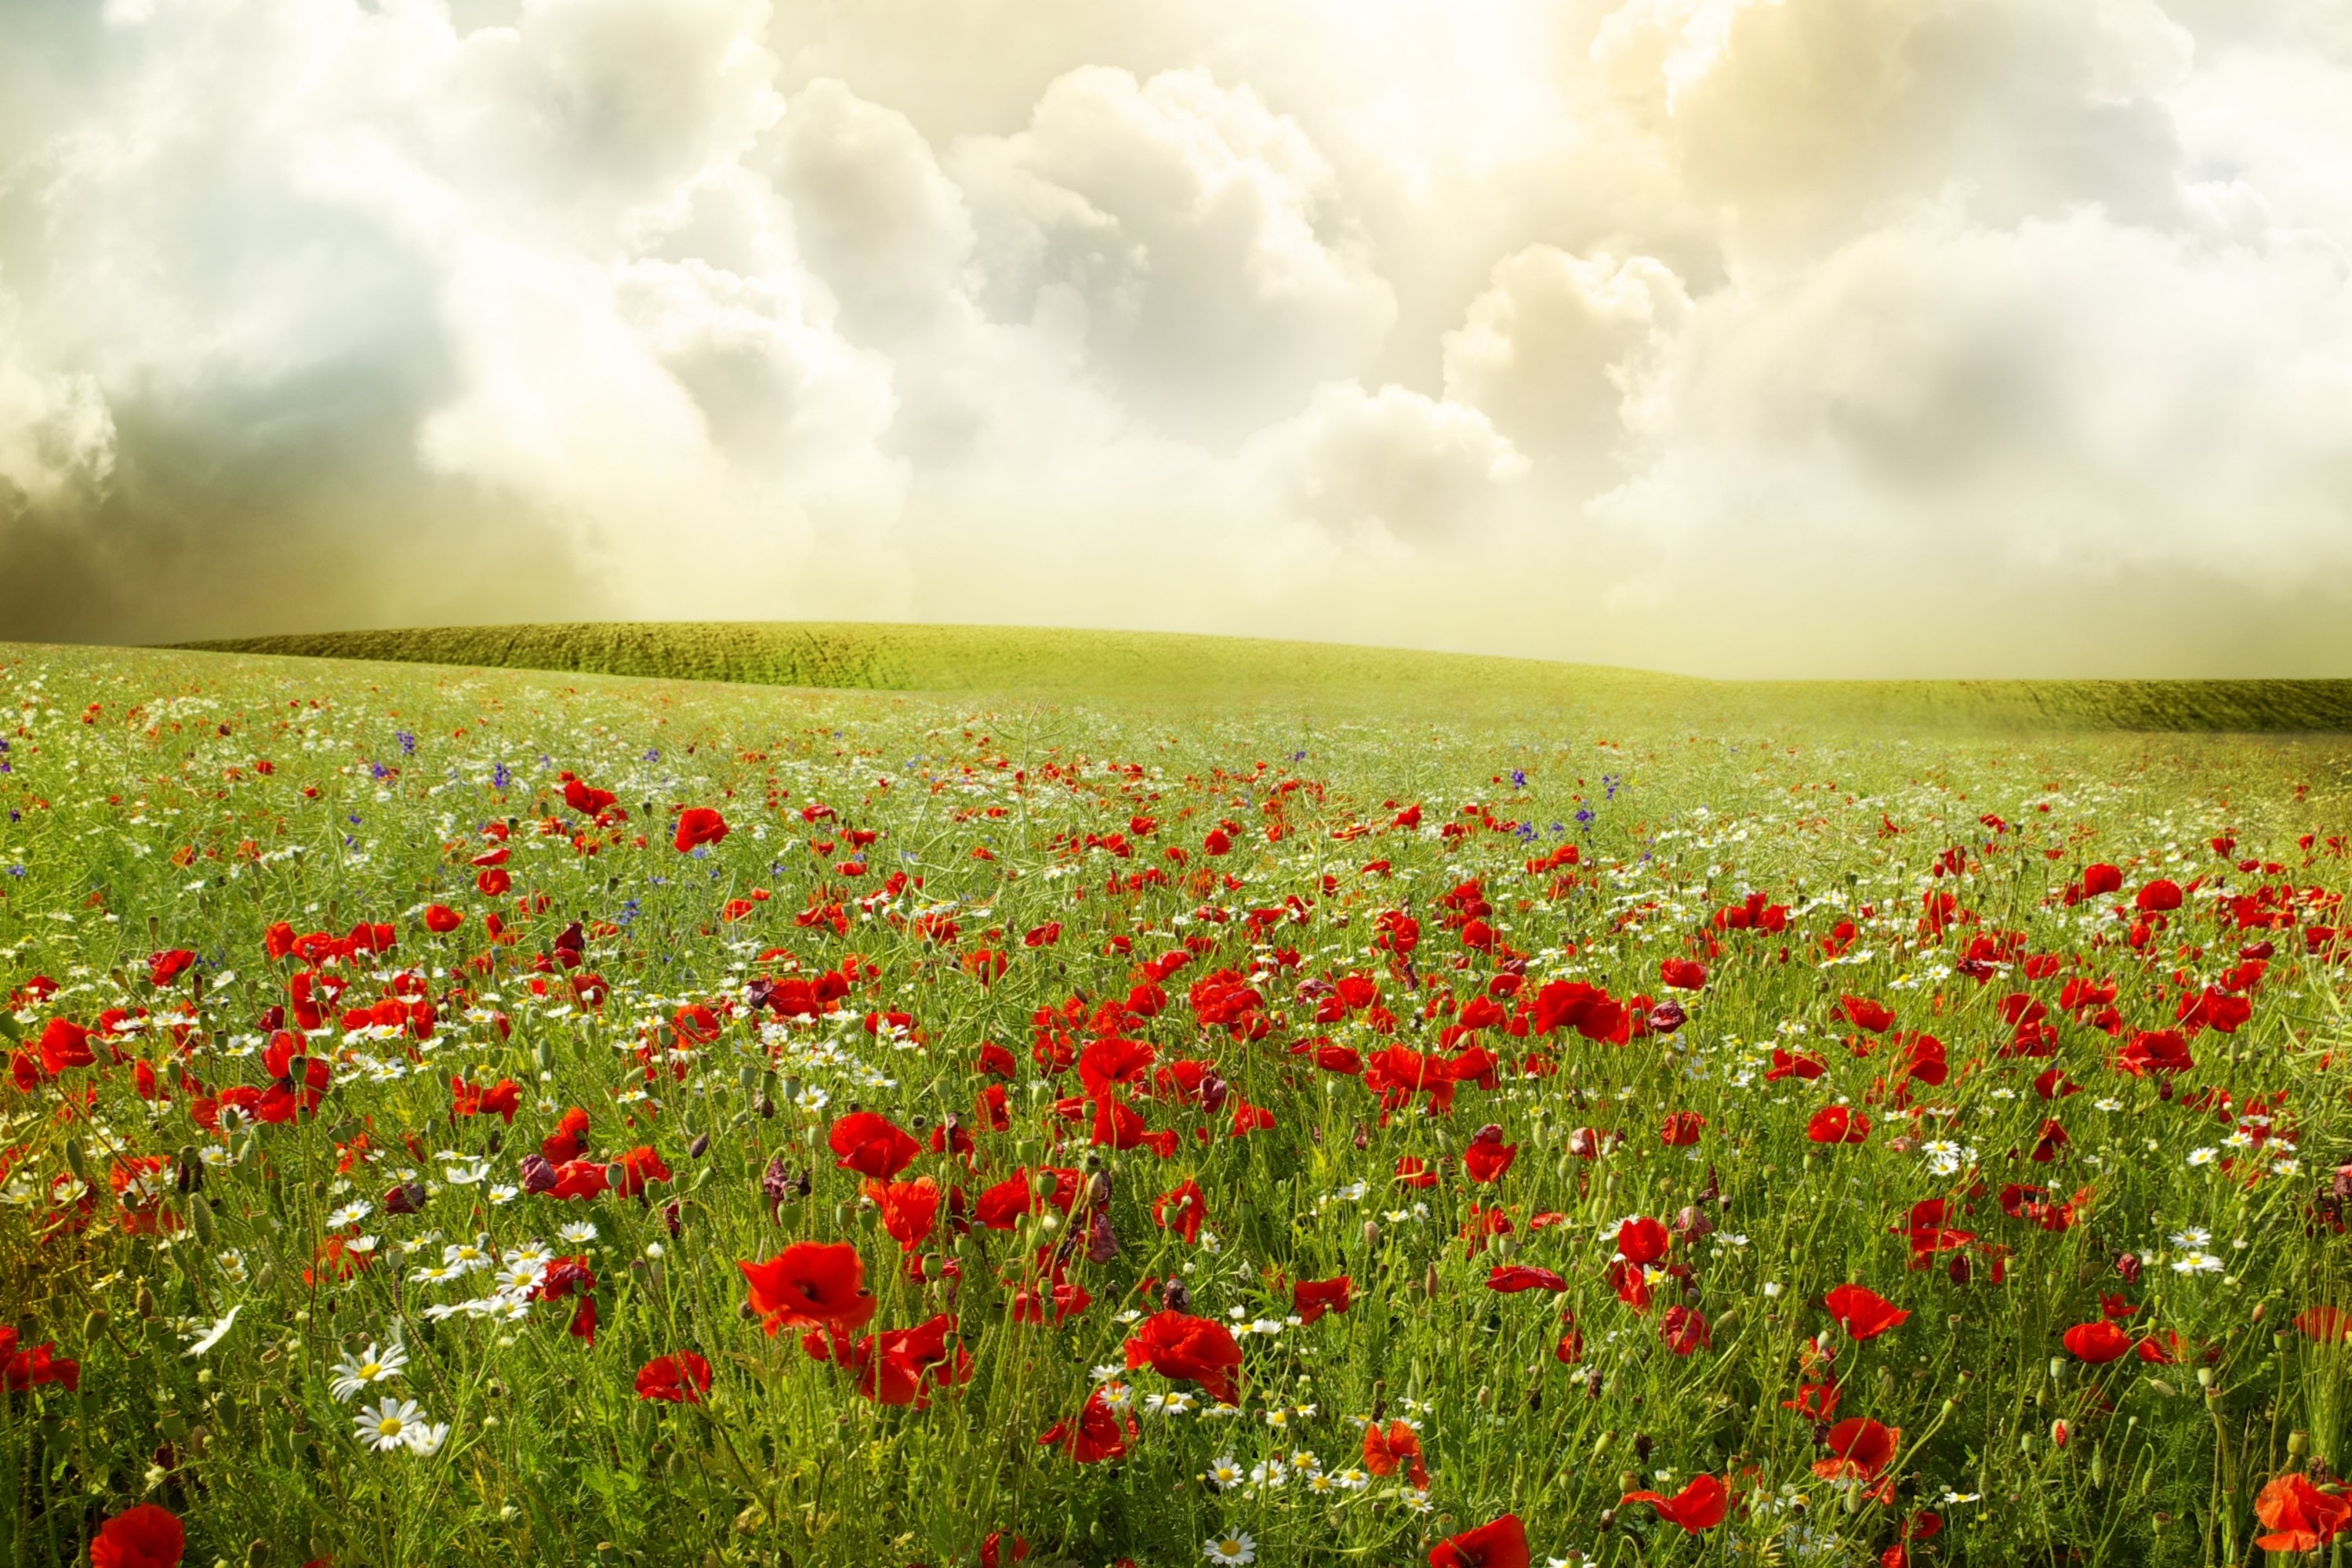 Field of poppies daisies wallpapers and images   wallpapers pictures 3000x2000